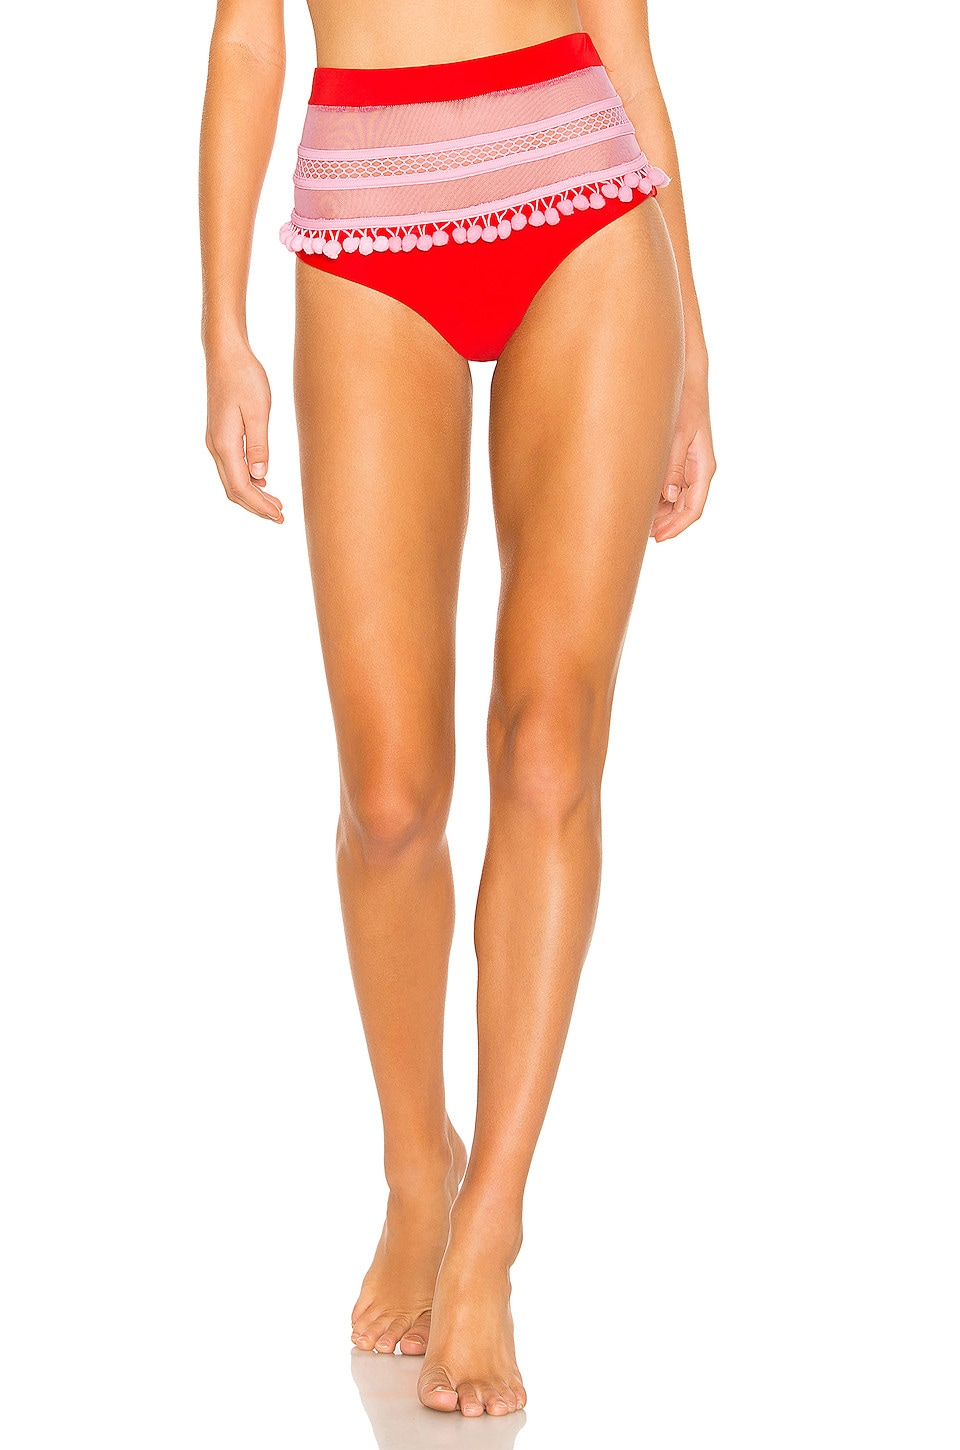 Tularosa Thessy Bottom in Red & Pink